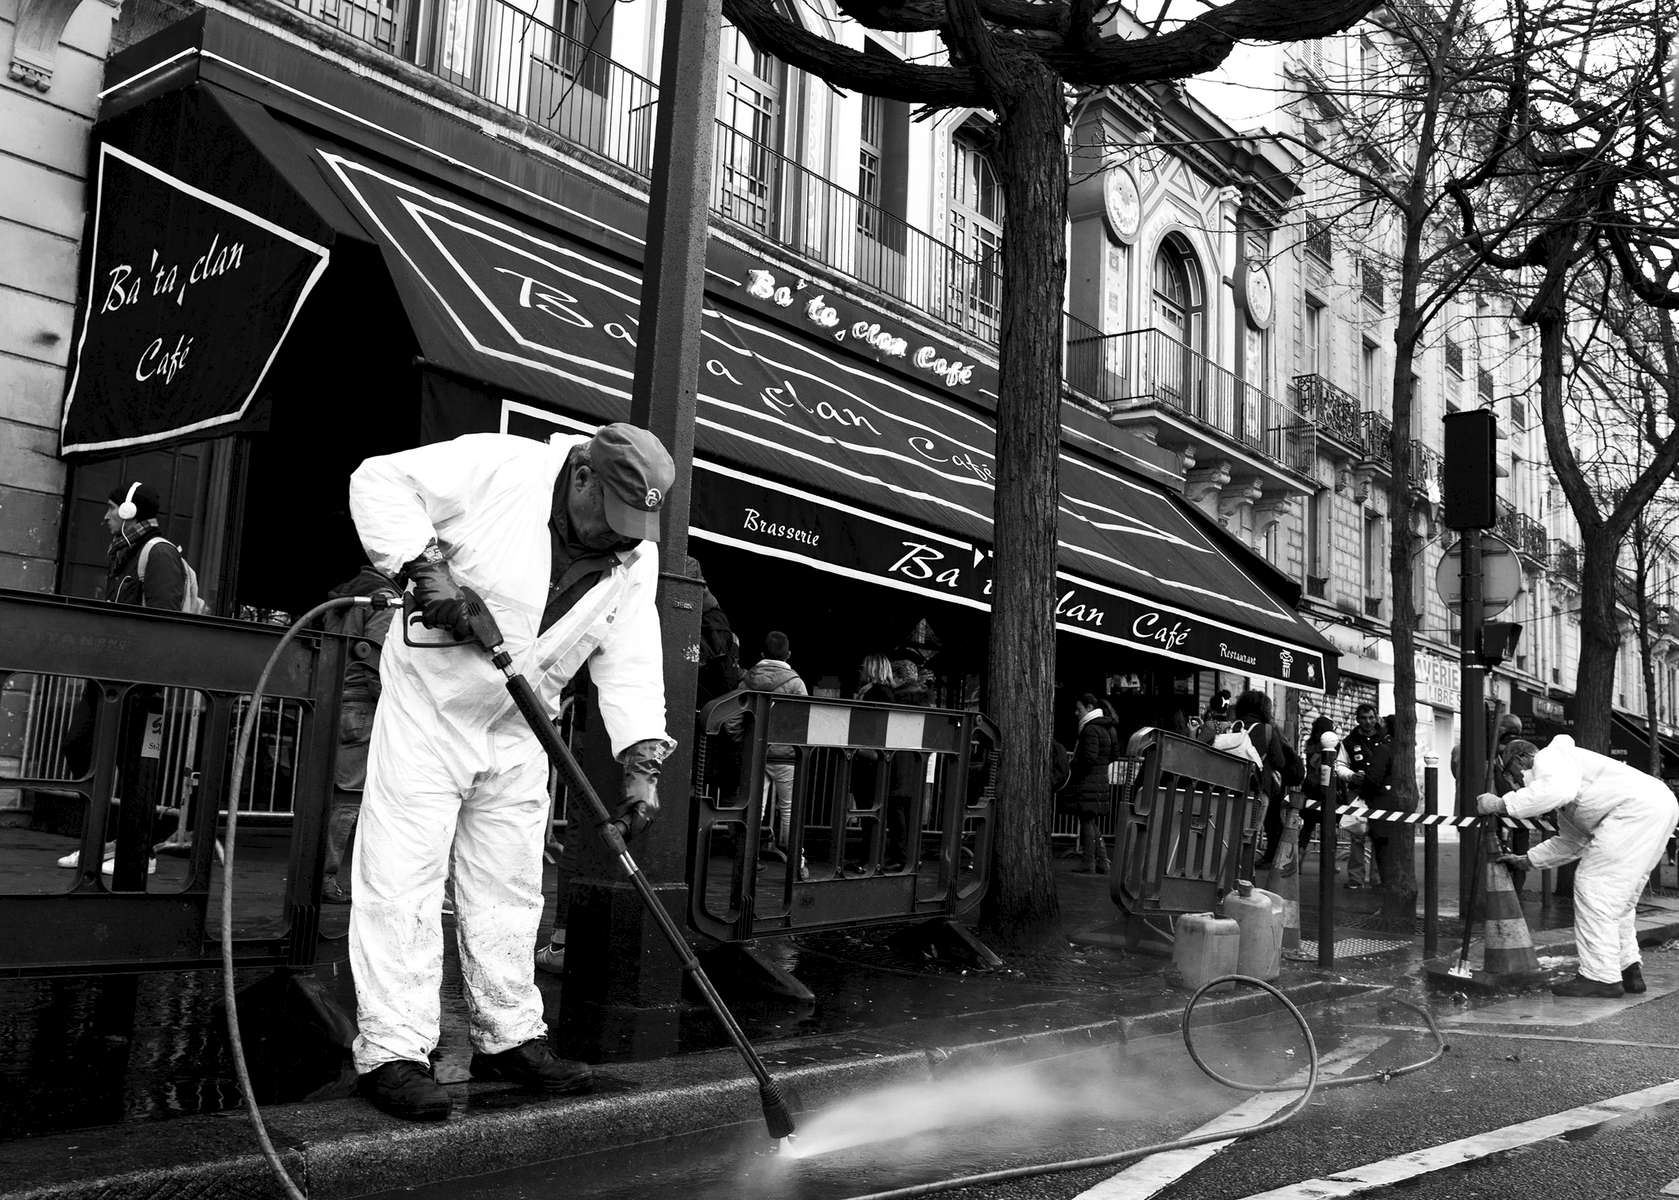 Employees of Property of Paris clean the sidewalk in front of the Bataclan, after the makeshift memorial that was created after the attacks was removed across the street, on December 22, 2015, Paris, France.  90 persons were killed  during a concert, during the November 13 attacks. Hundreds of people come everyday to reflect at this makeshift memorial as well as the ones that were created on the locations of the attacks.